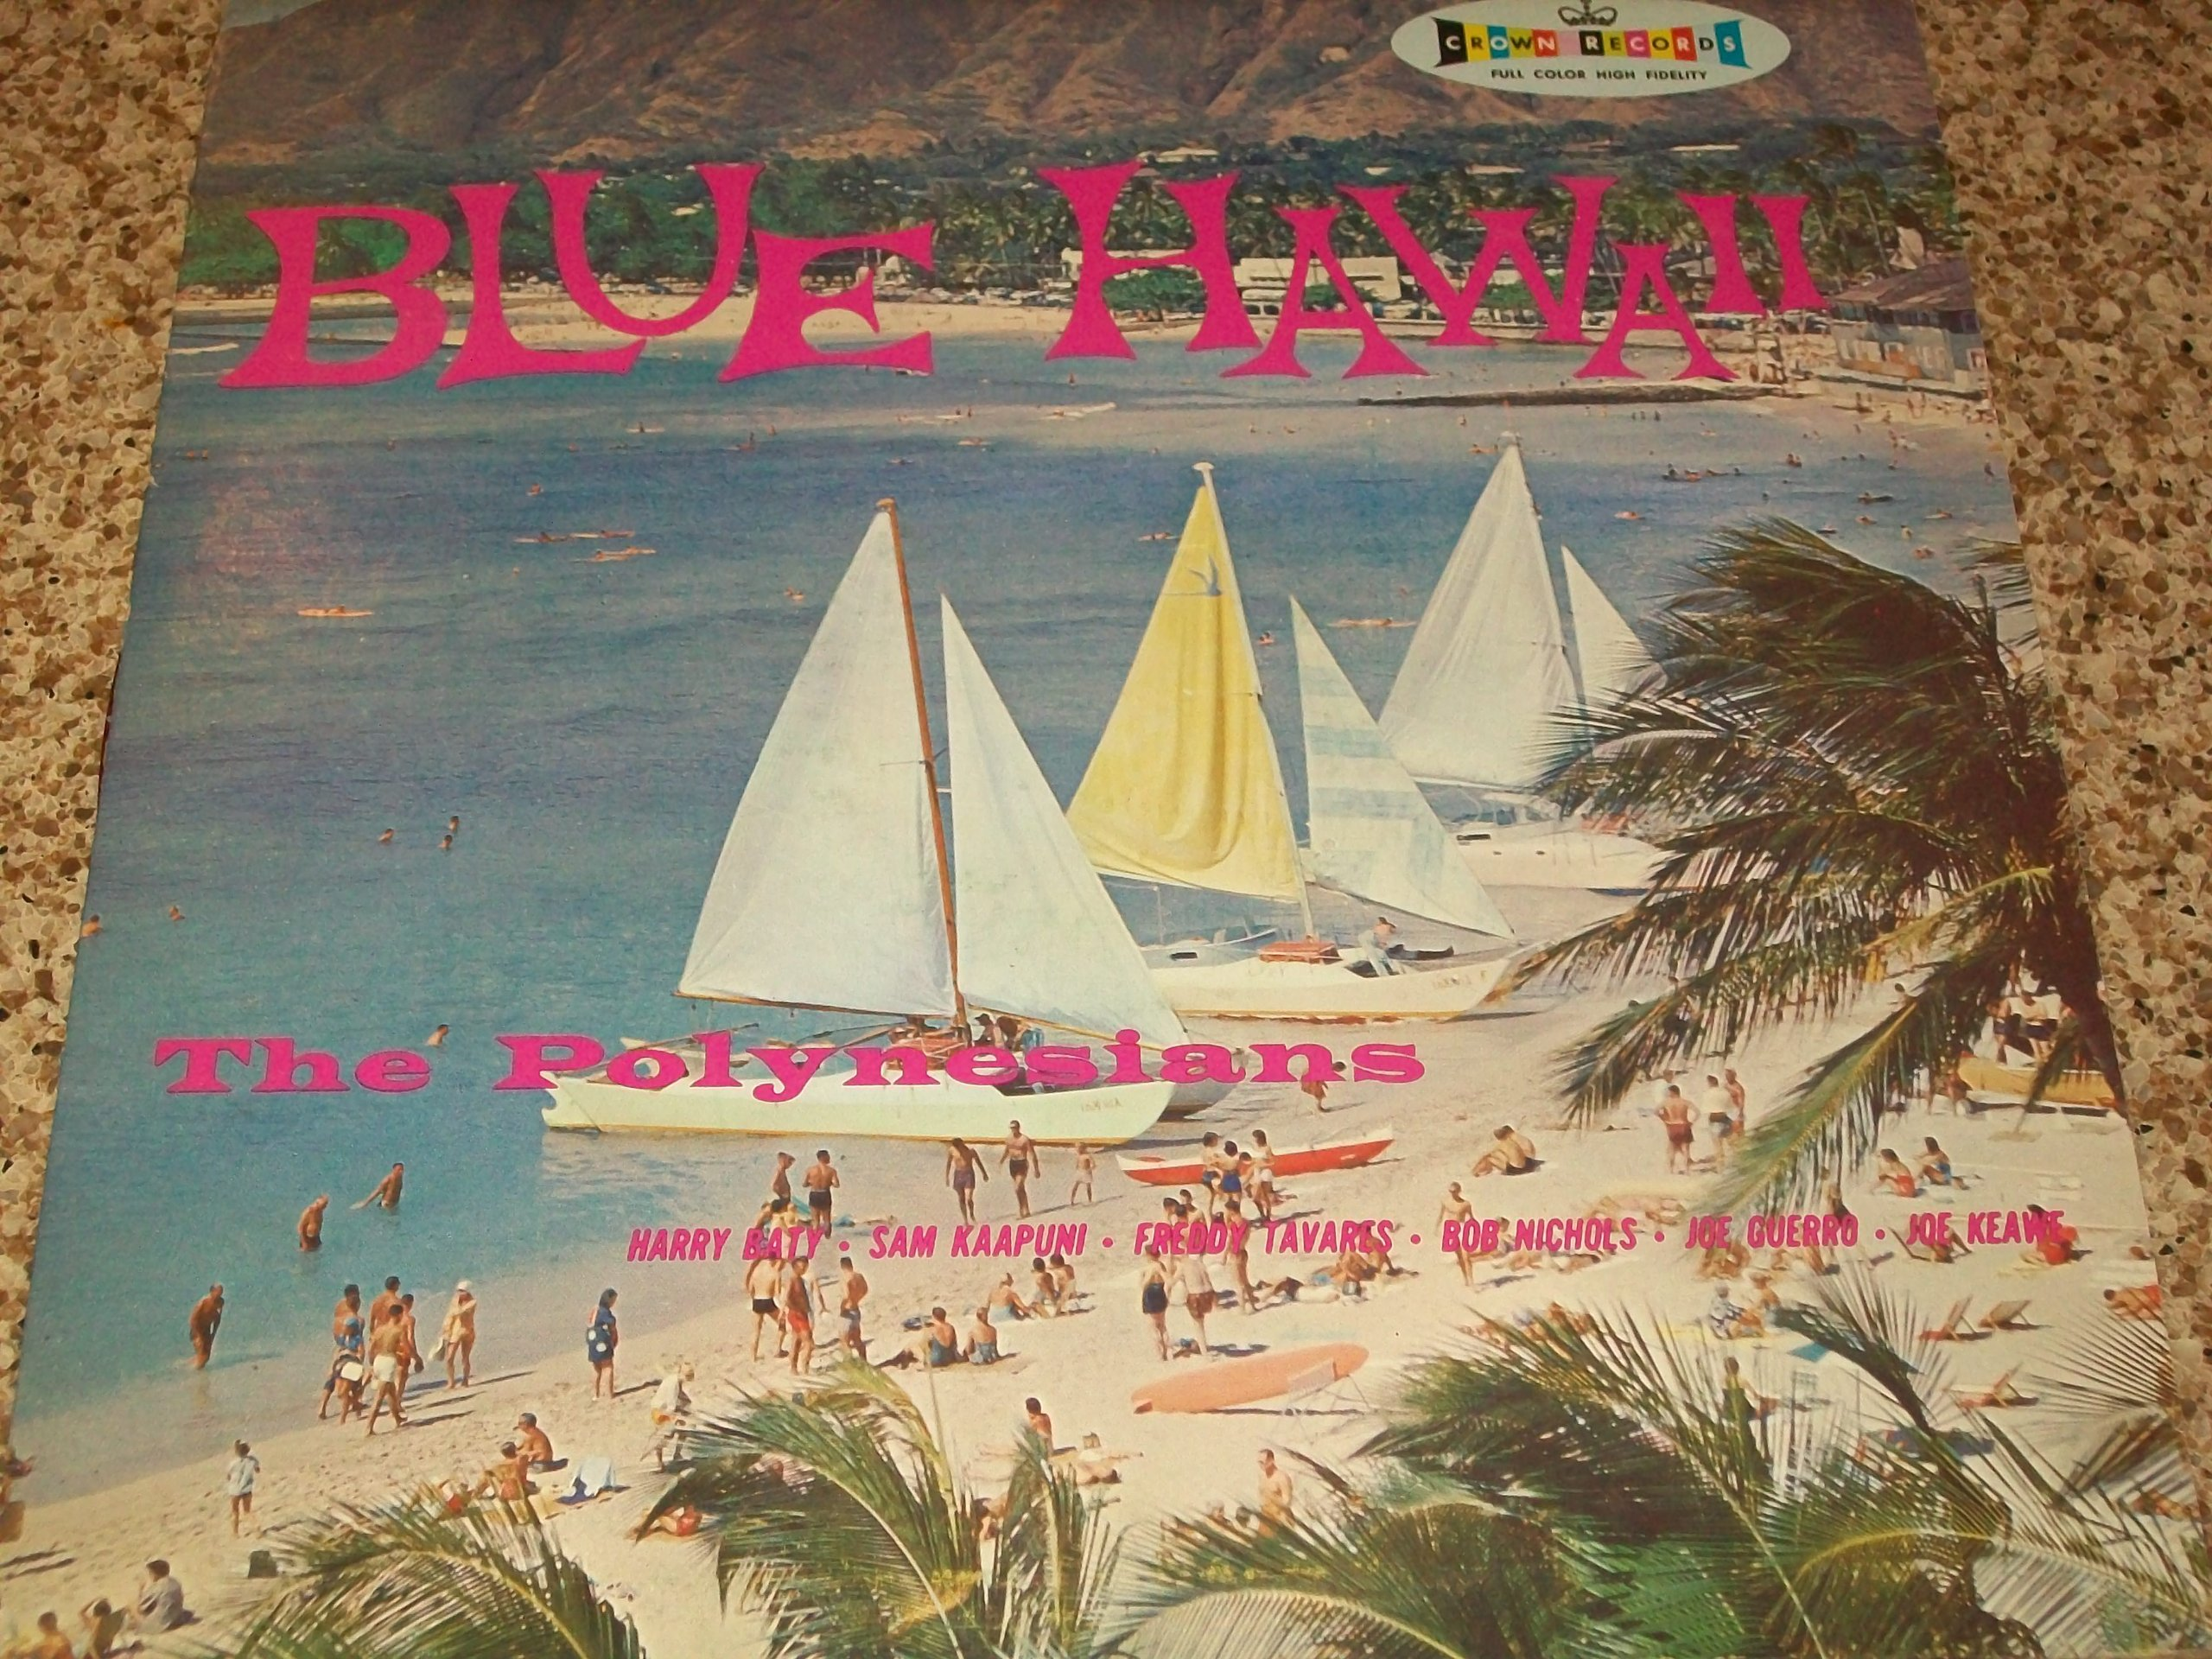 THE POLYNESIANS LP BLUE HAWAII COLORED VINYL by CROWN RECORDS